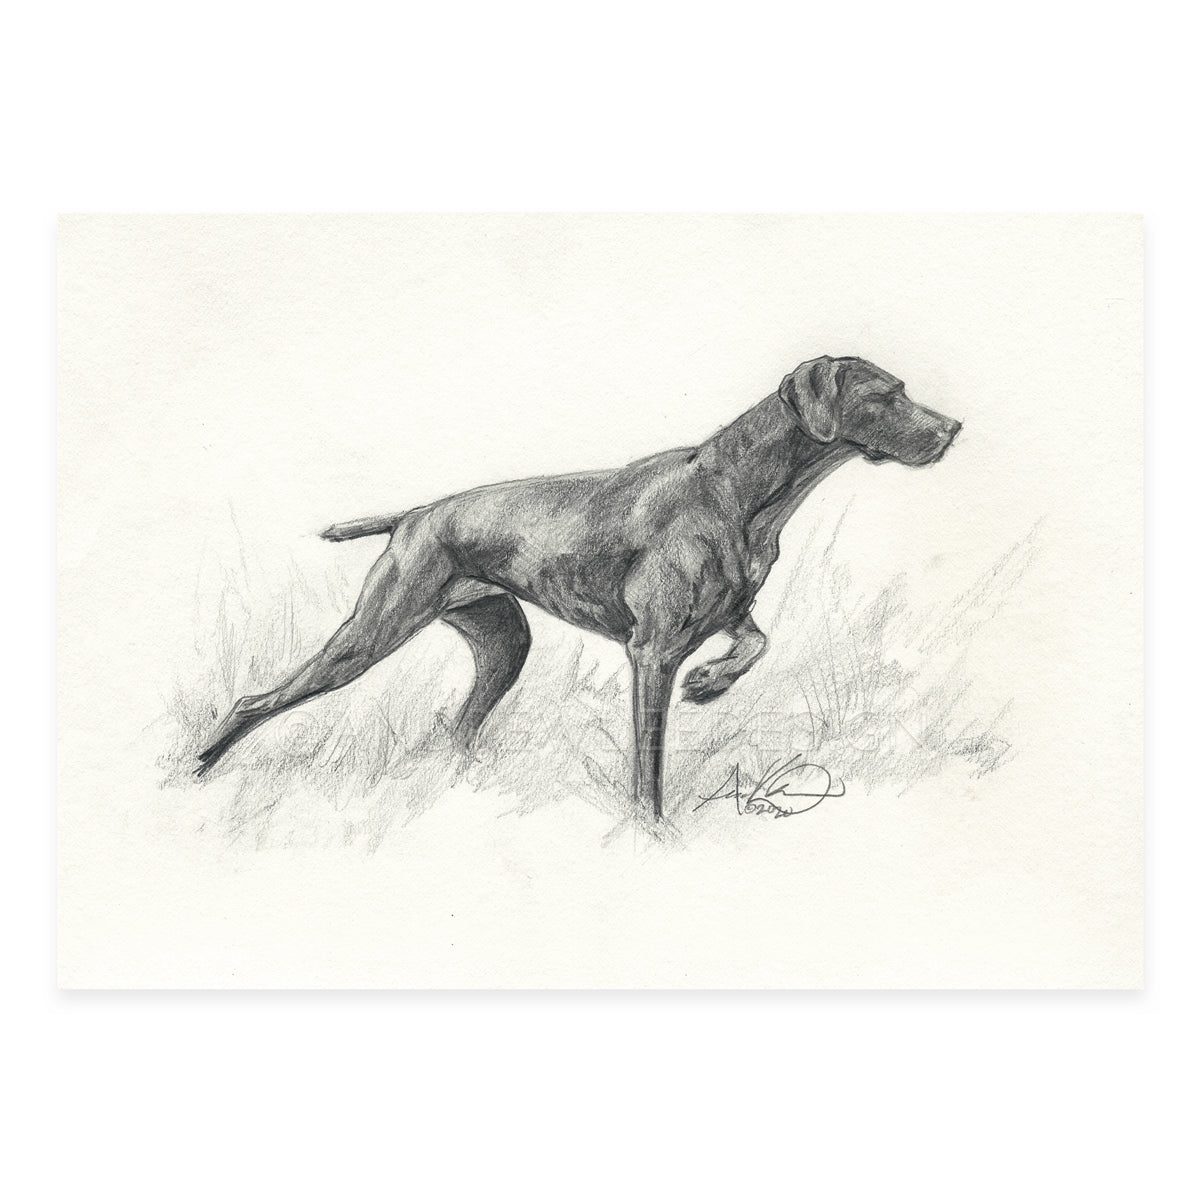 "German Shorthaired Pointer in Pencil, 5x7"" Print"